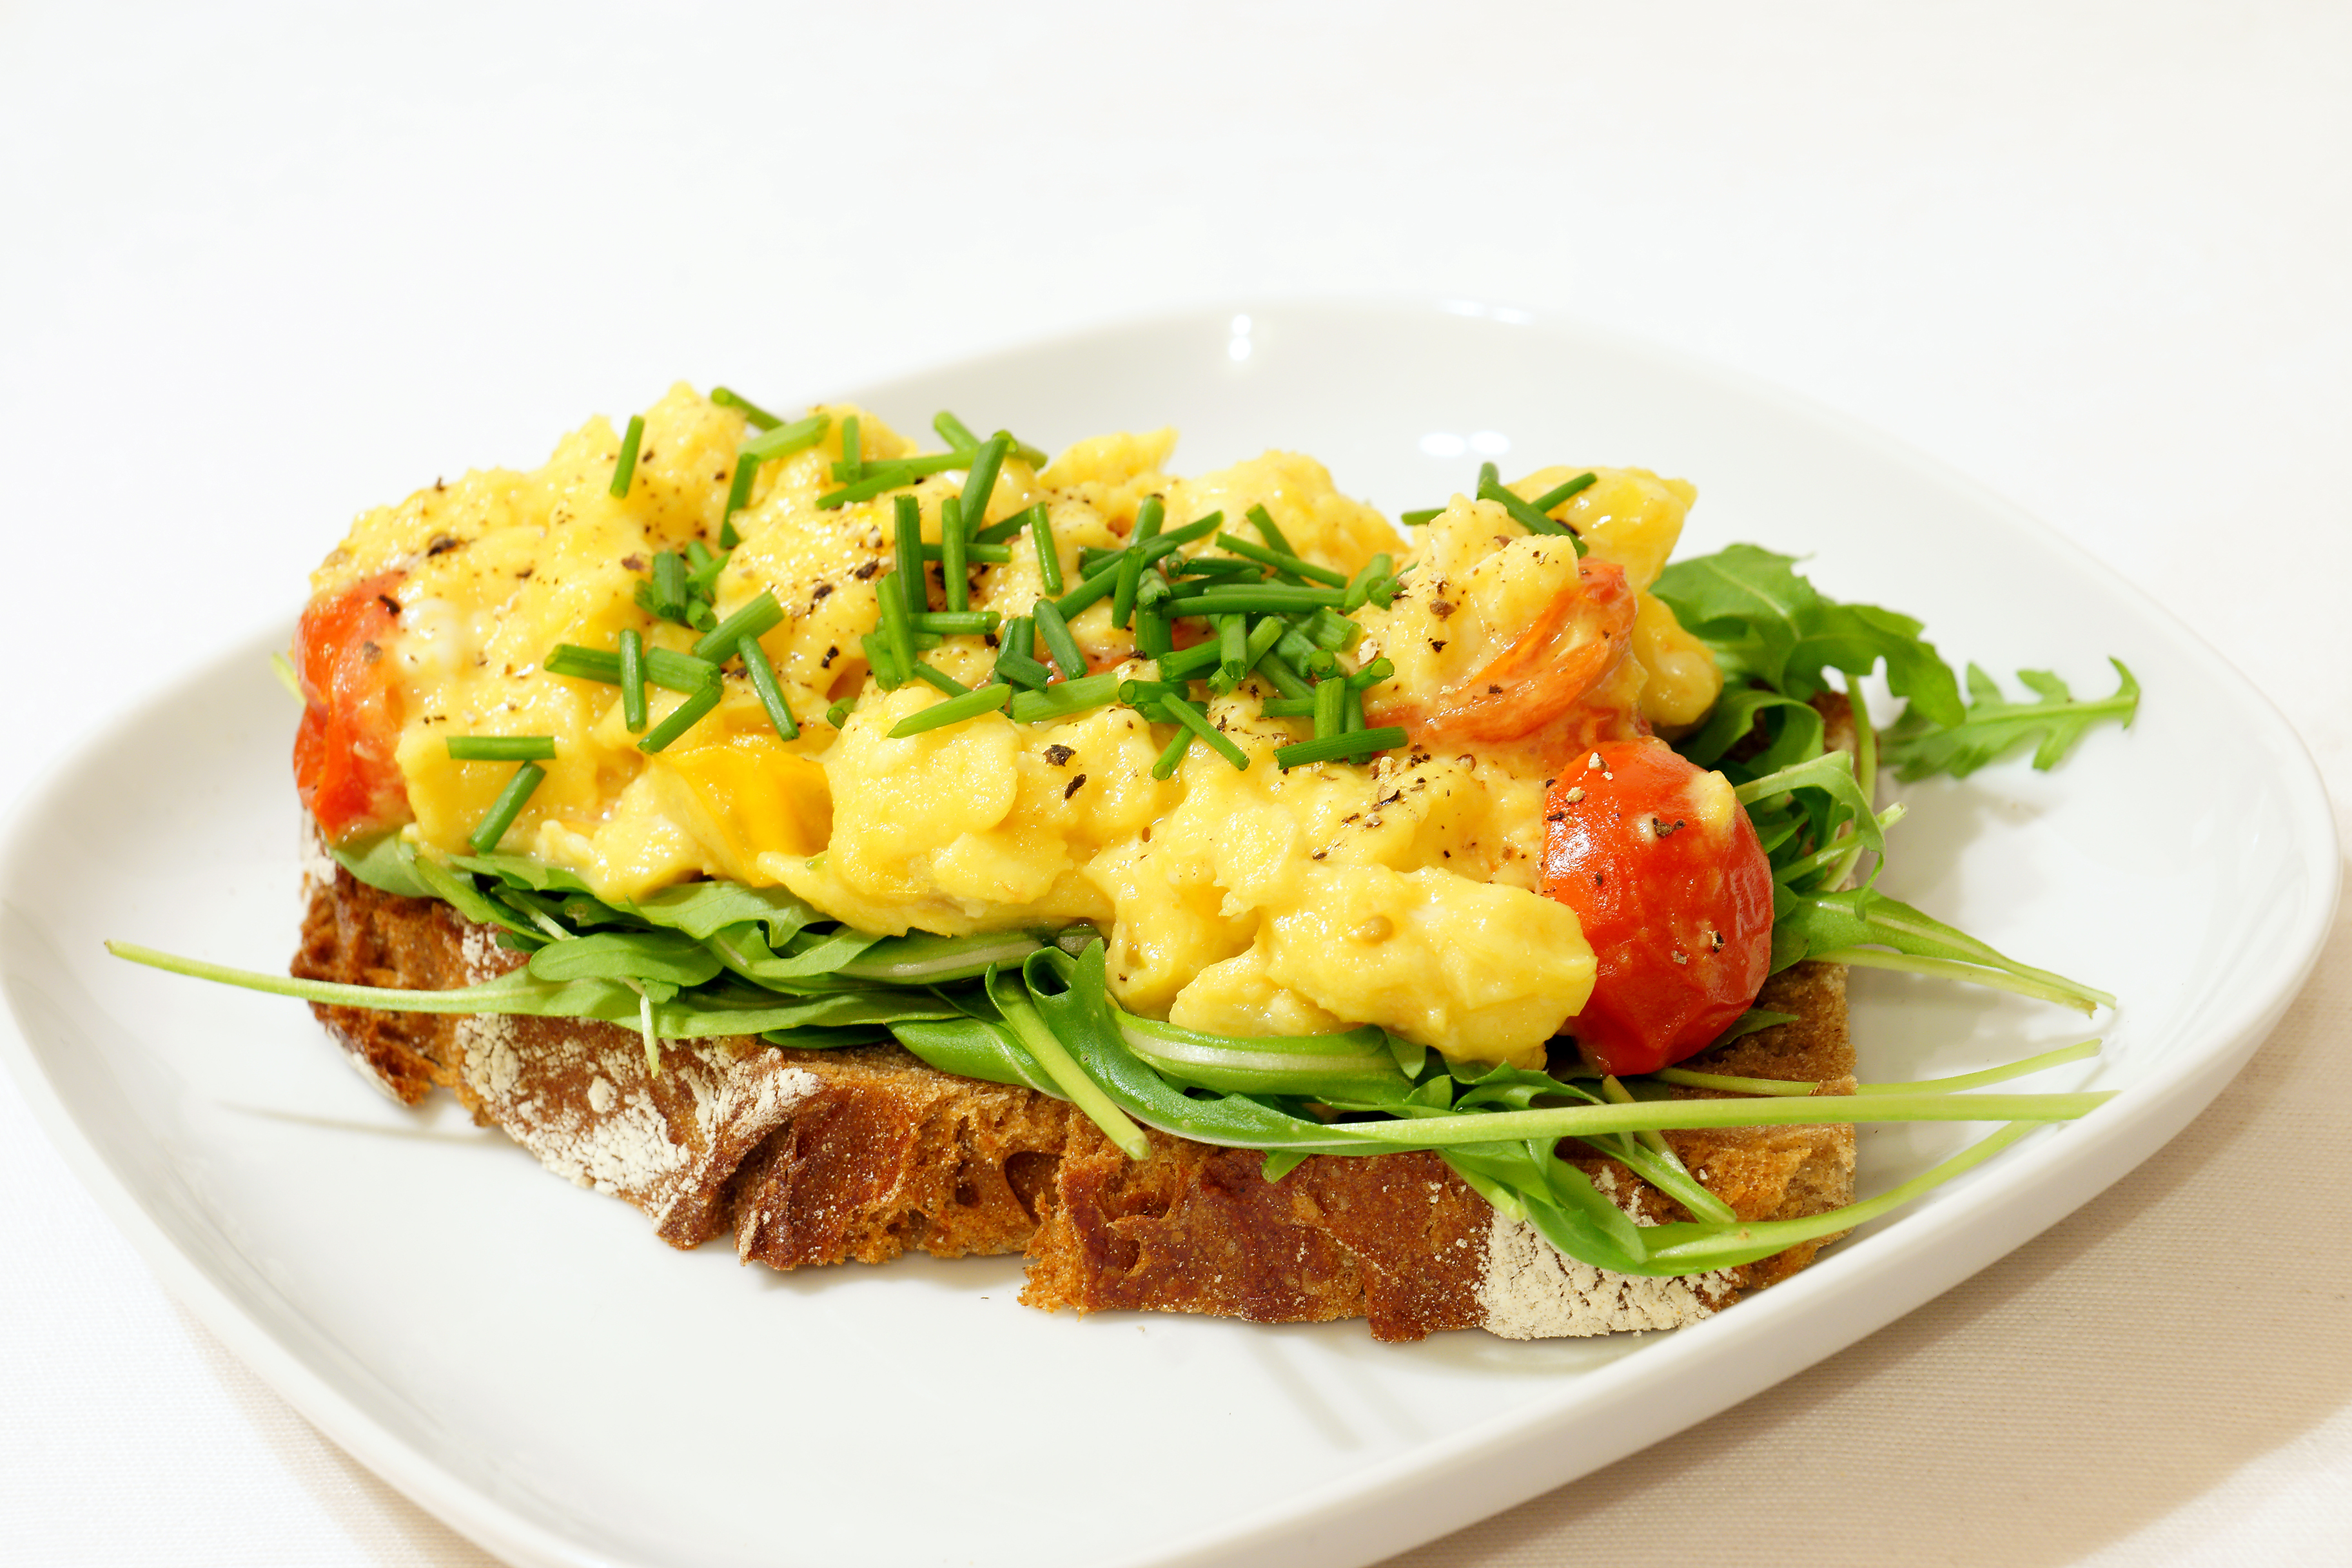 The best french style scrambled eggs a guest post for for French style scrambled eggs